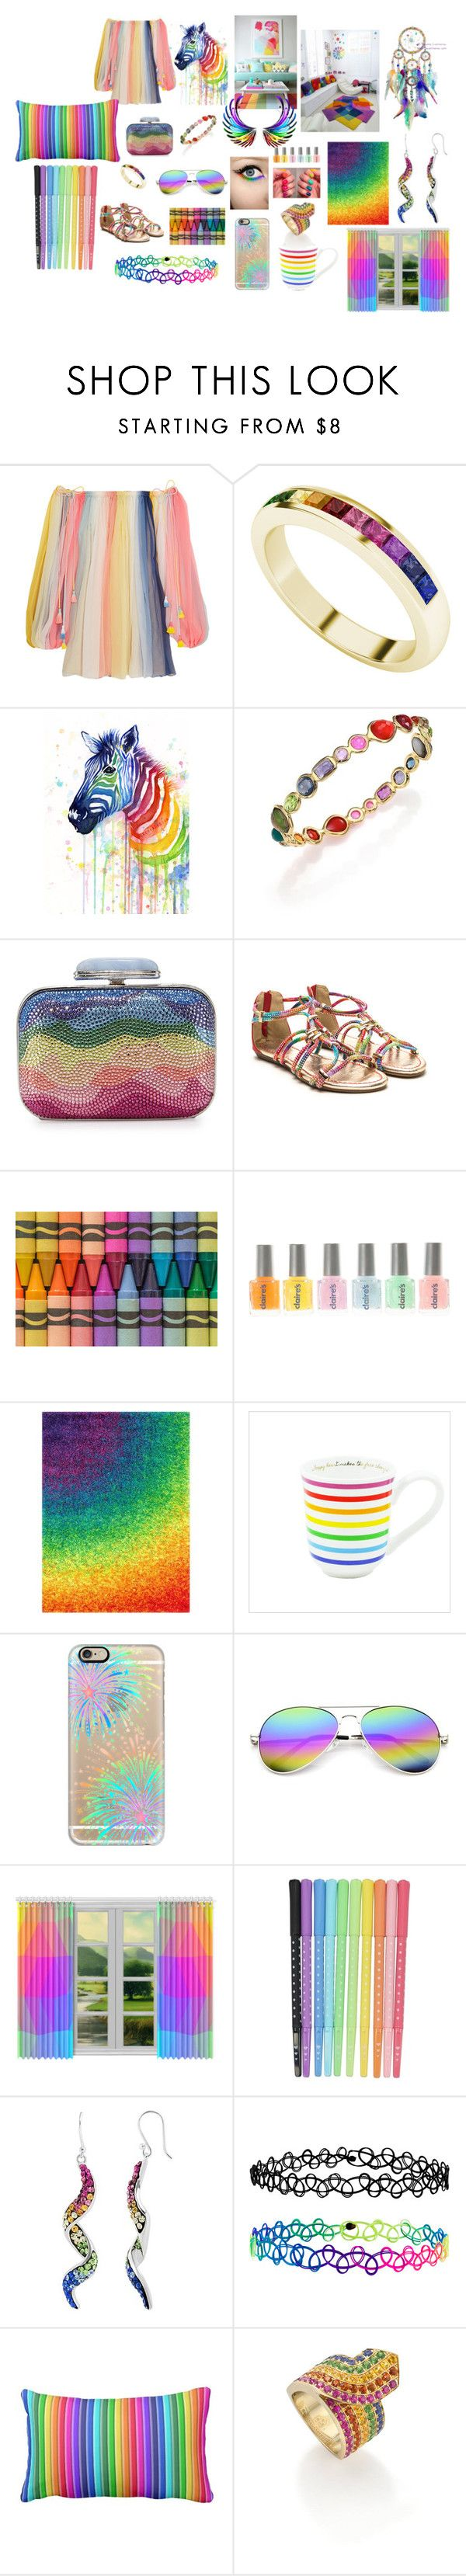 """Over the rainbow"" by ustine on Polyvore featuring moda, Chloé, StyleRocks, Ippolita, Judith Leiber, Loloi Rugs, Casetify, Revo, cutekawaii i Accessorize"